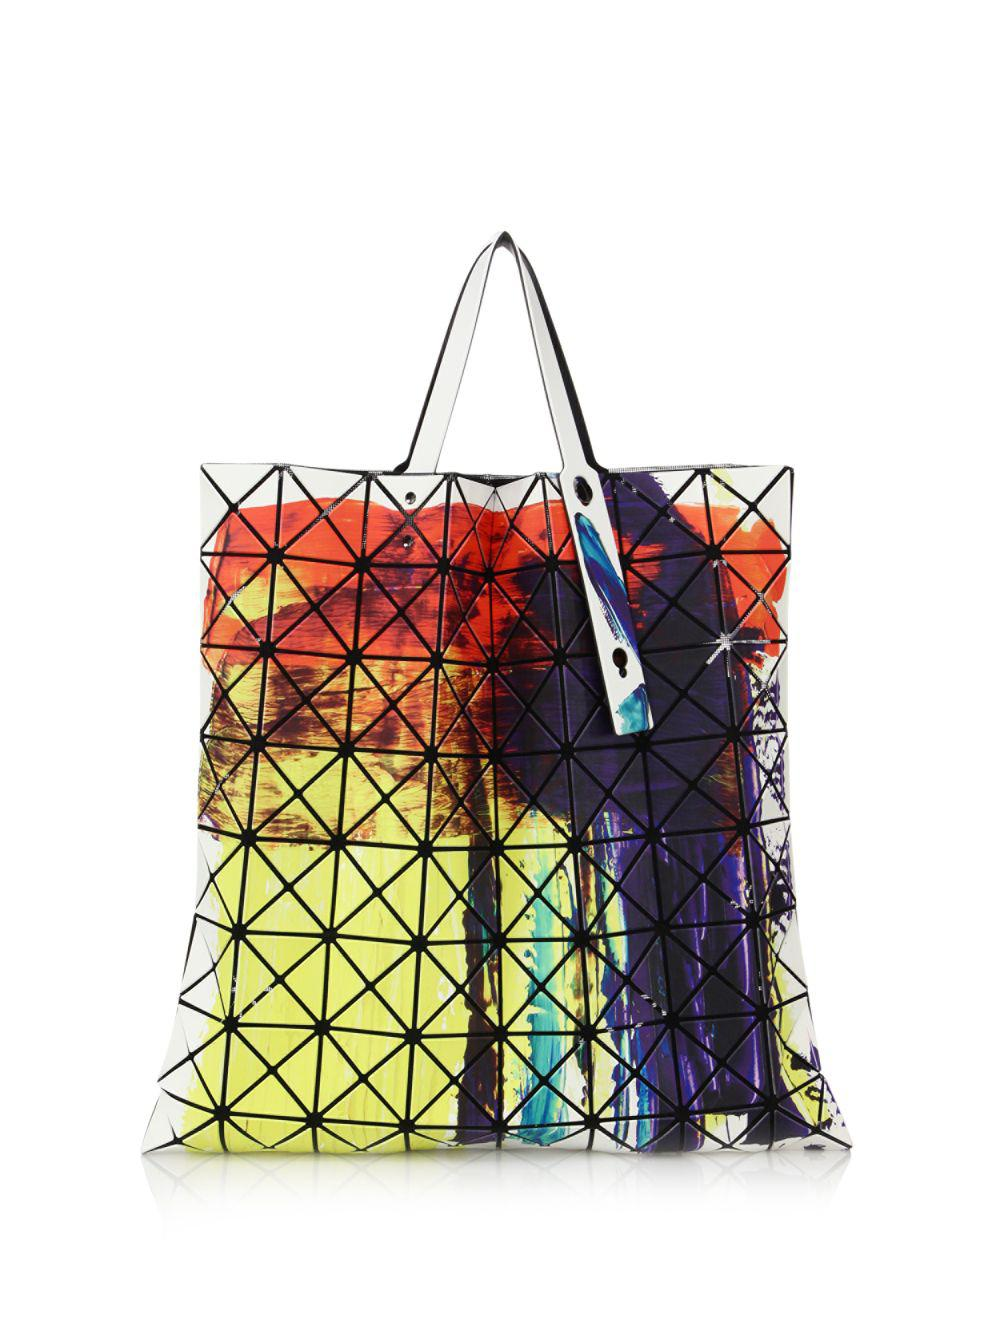 Lyst - Bao Bao Issey Miyake Soul Multicolor Tote - Save 40% e473d7f018a43